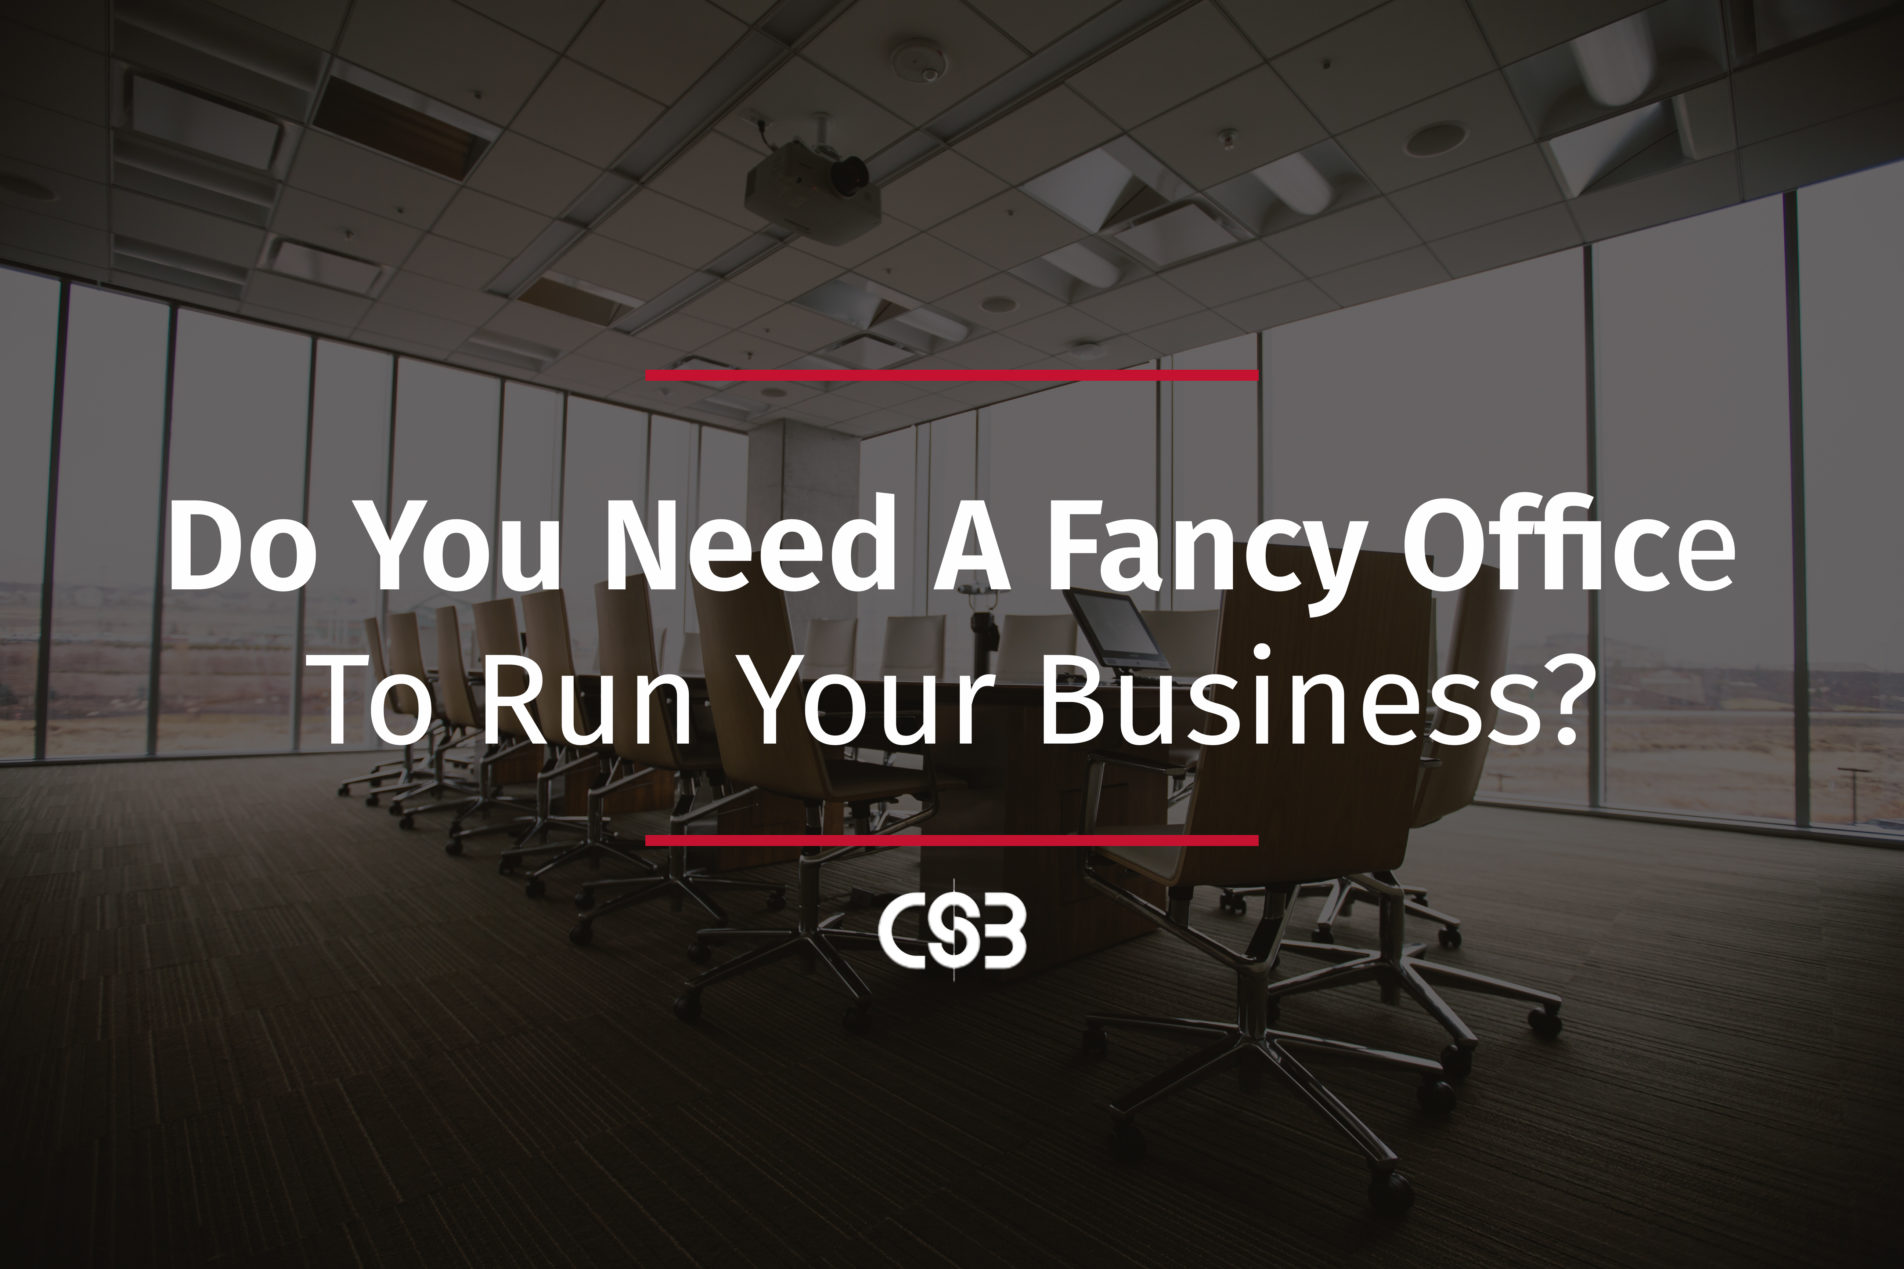 do you need fancy office to run your business